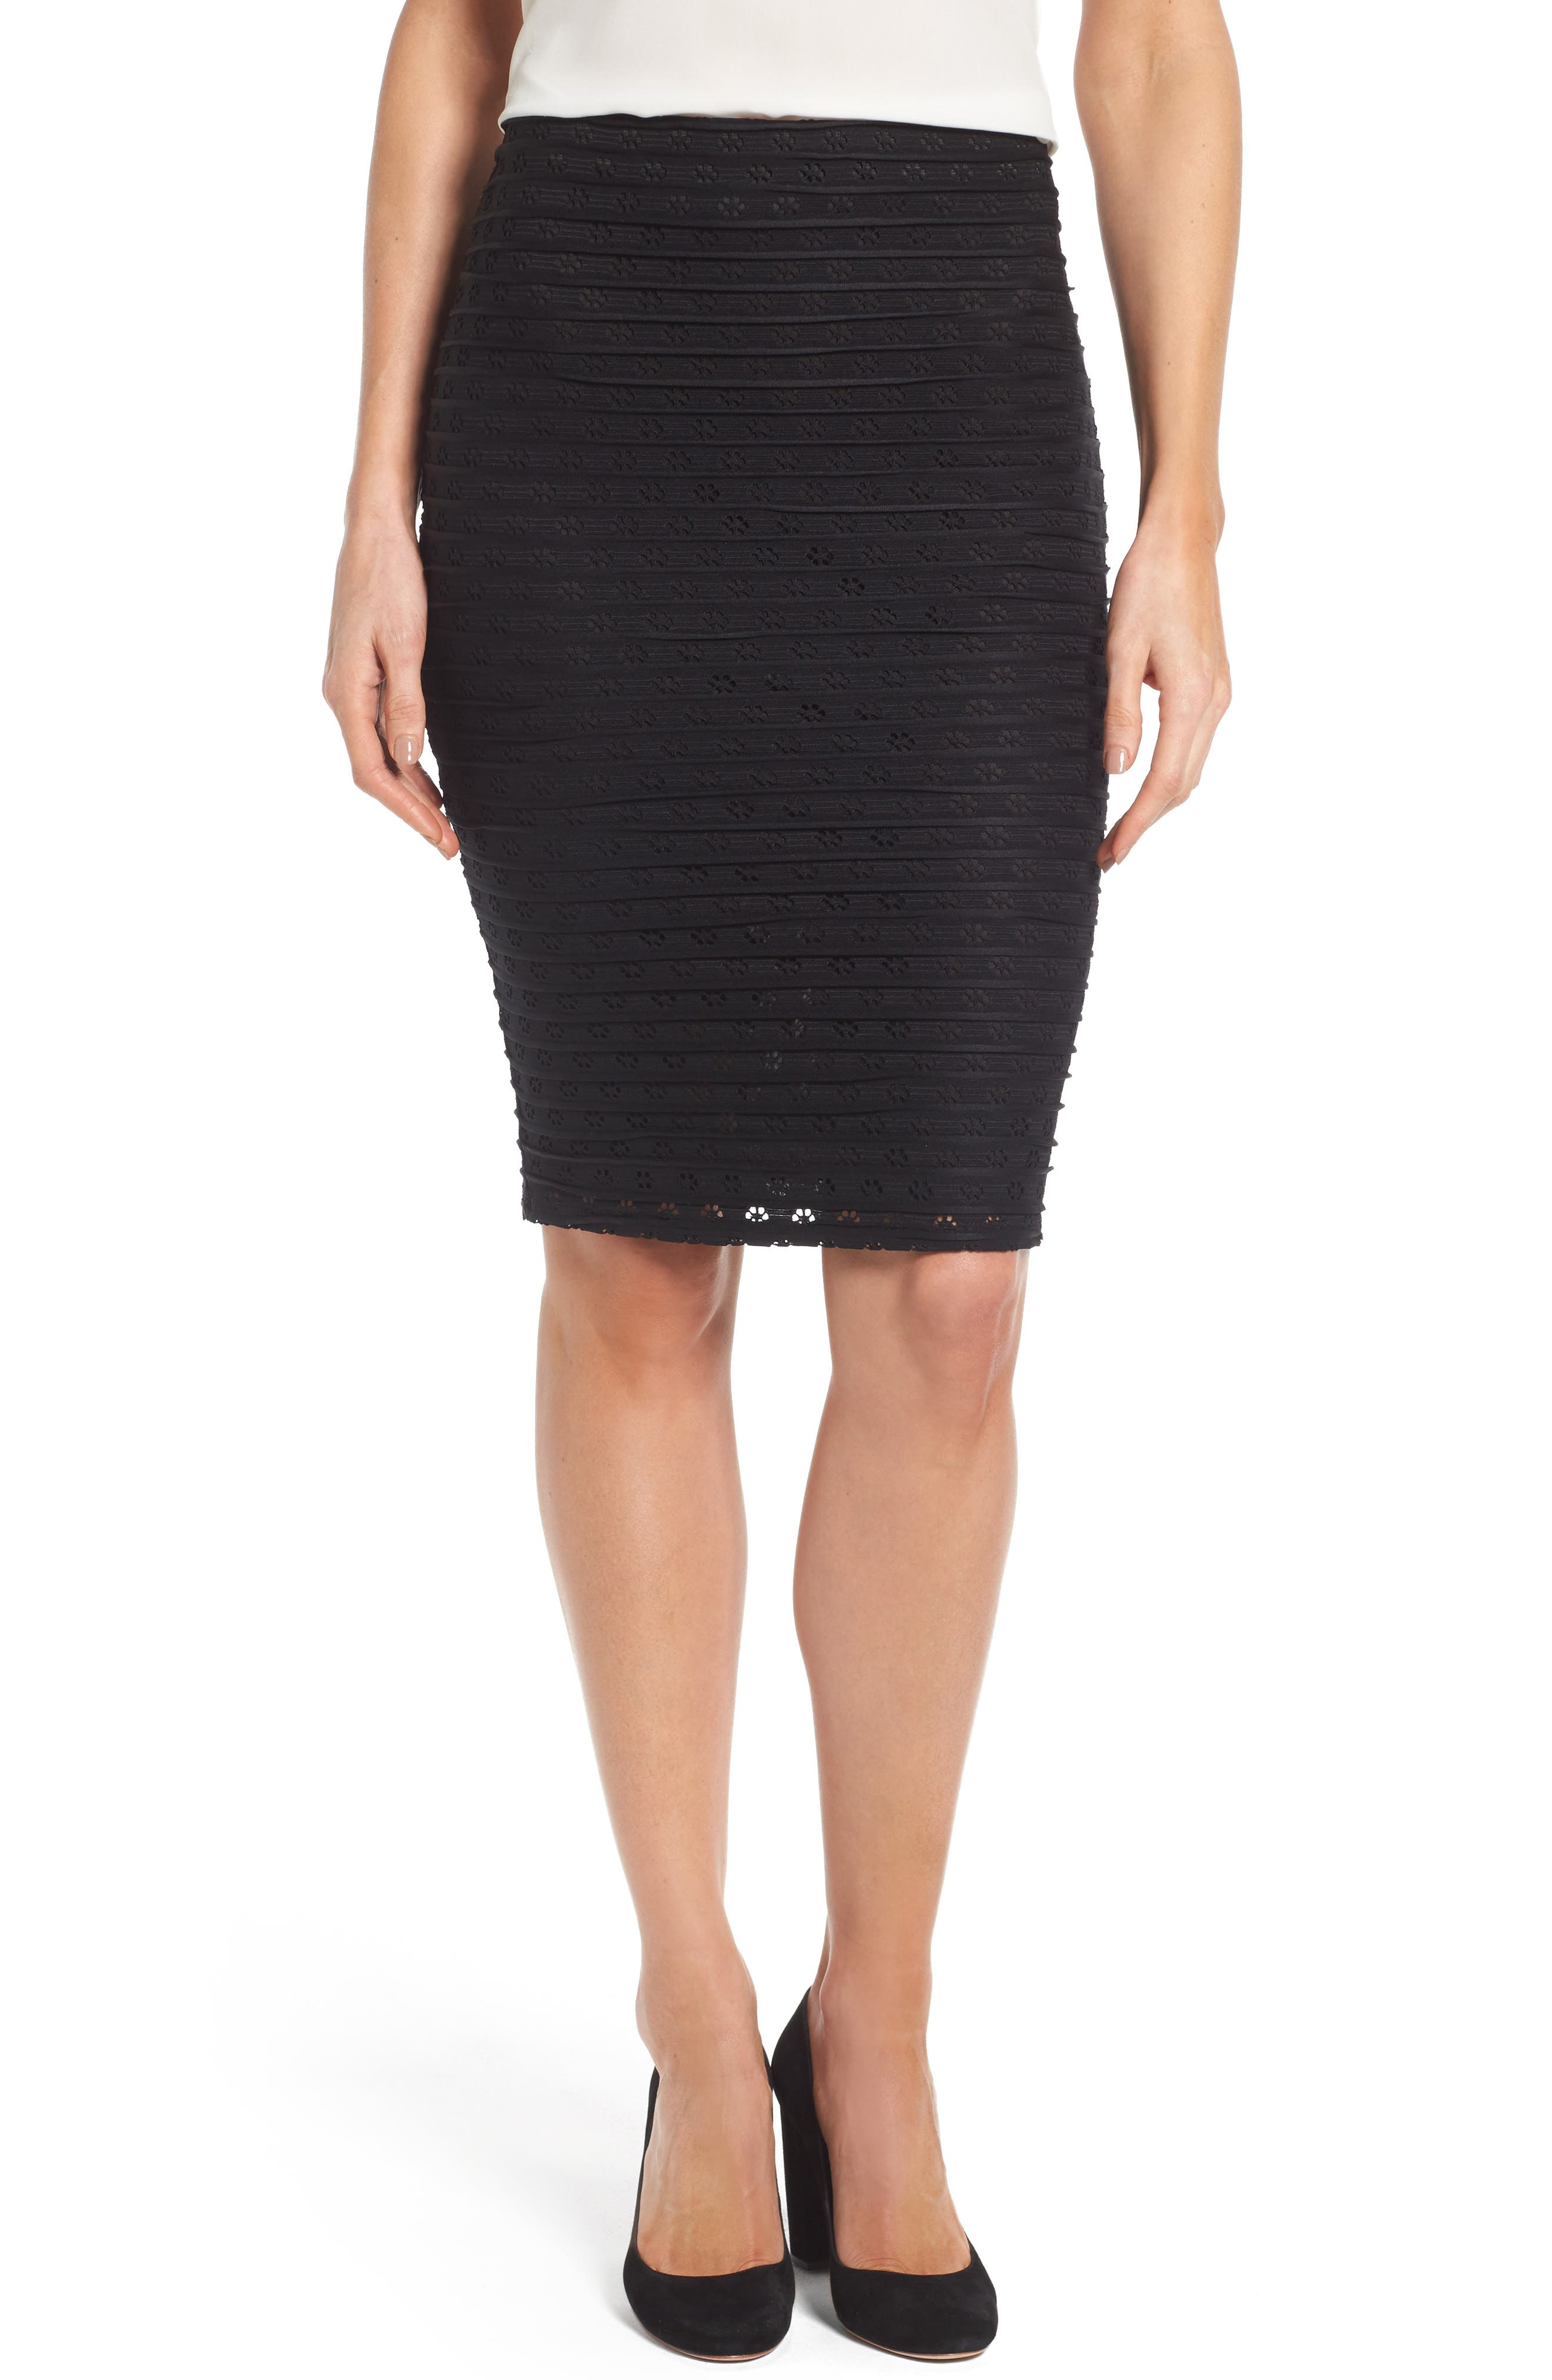 Alternate Image 1 Selected - CeCe Jacquard Knit Pencil Skirt